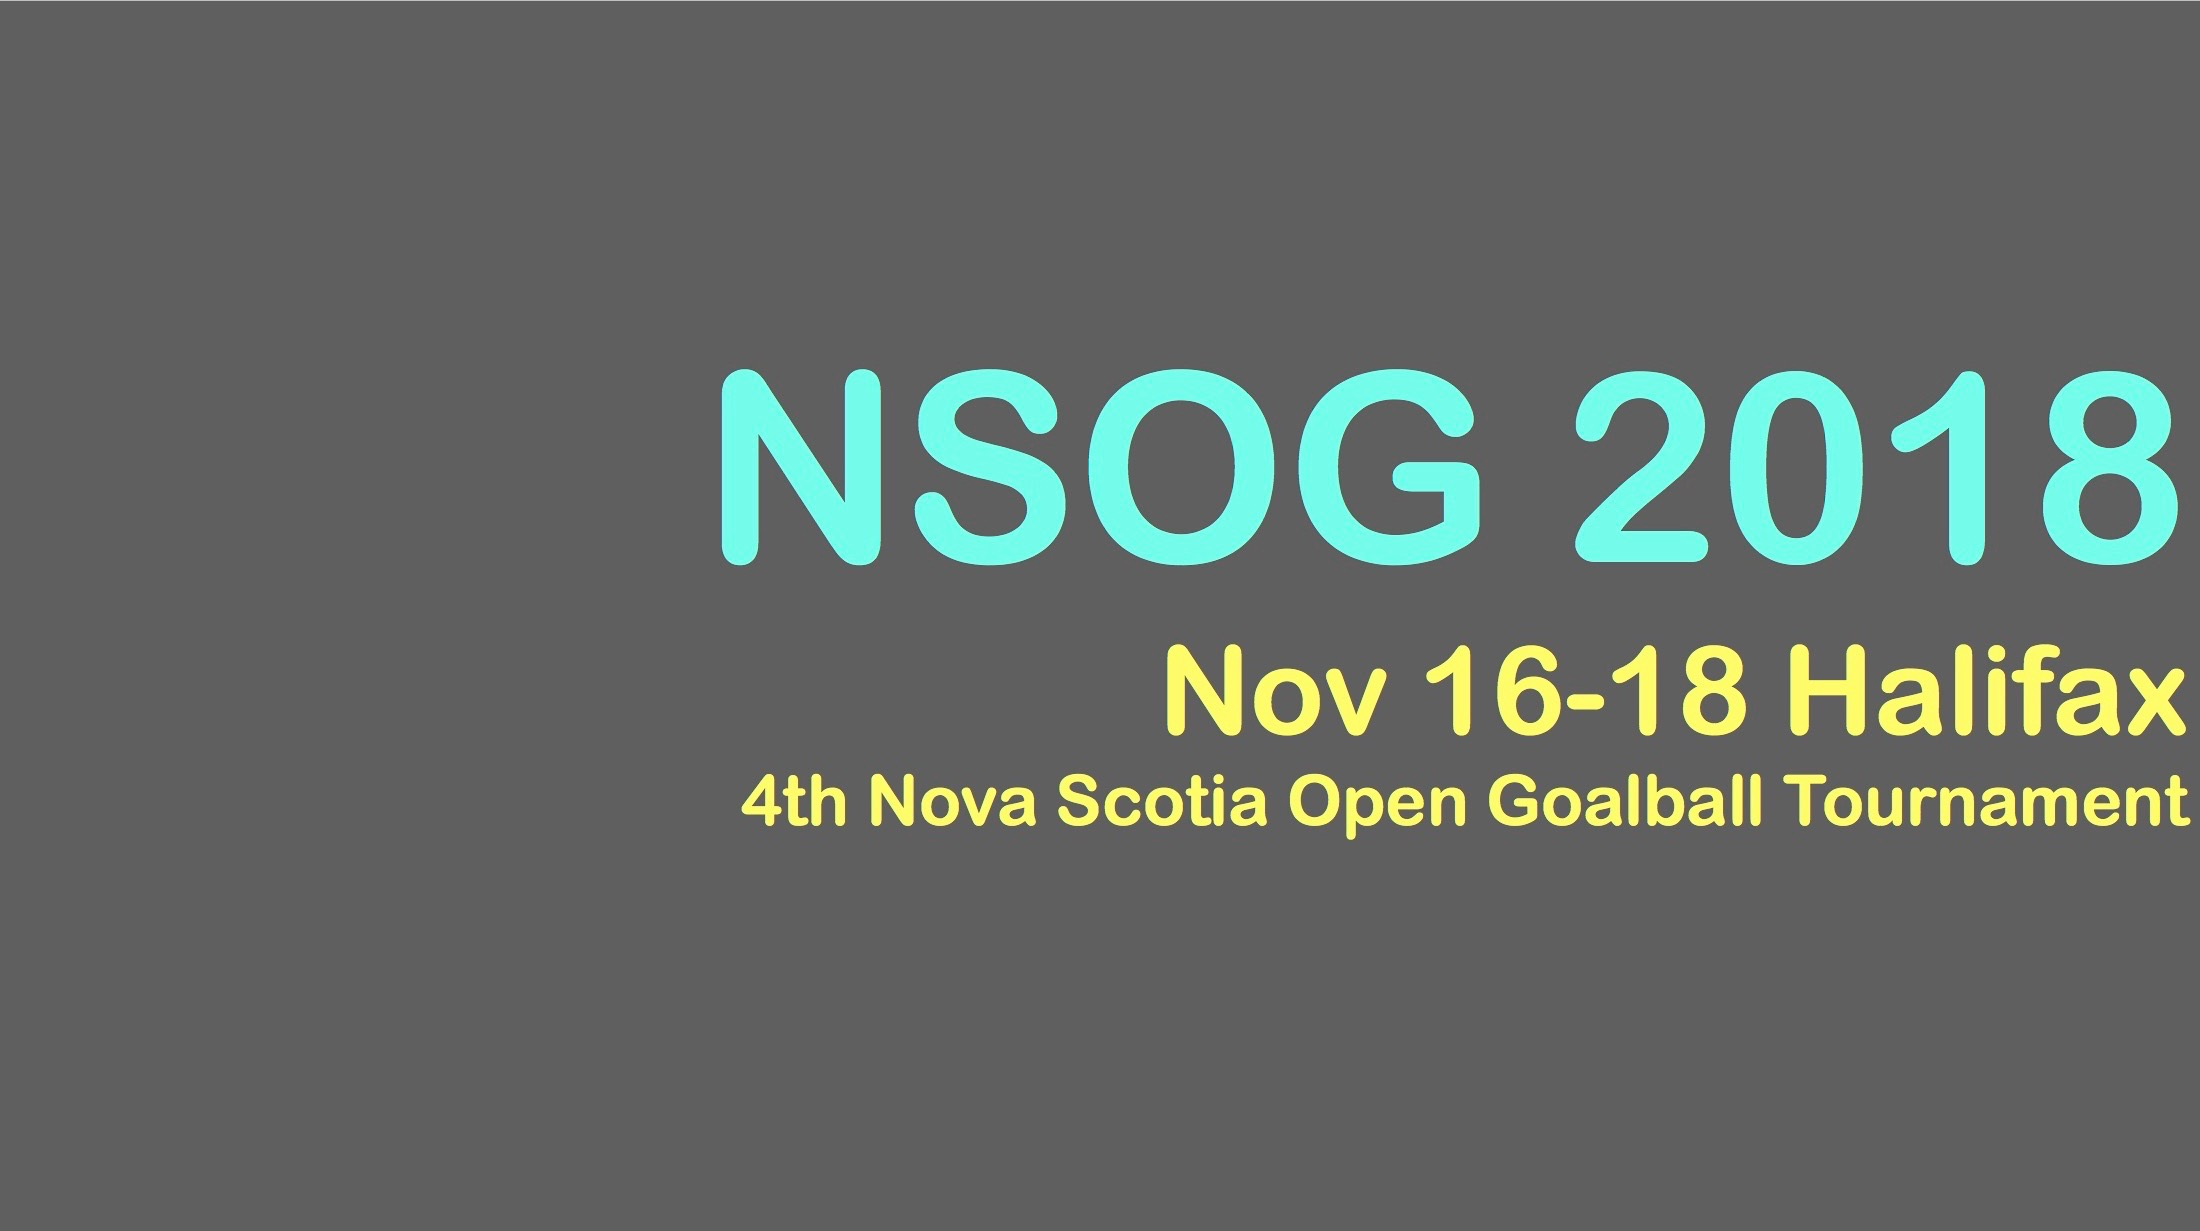 NSOG 2018 Nov 16-18 Halifax 4th Annual Nova Scotia Open Goalball Tournament